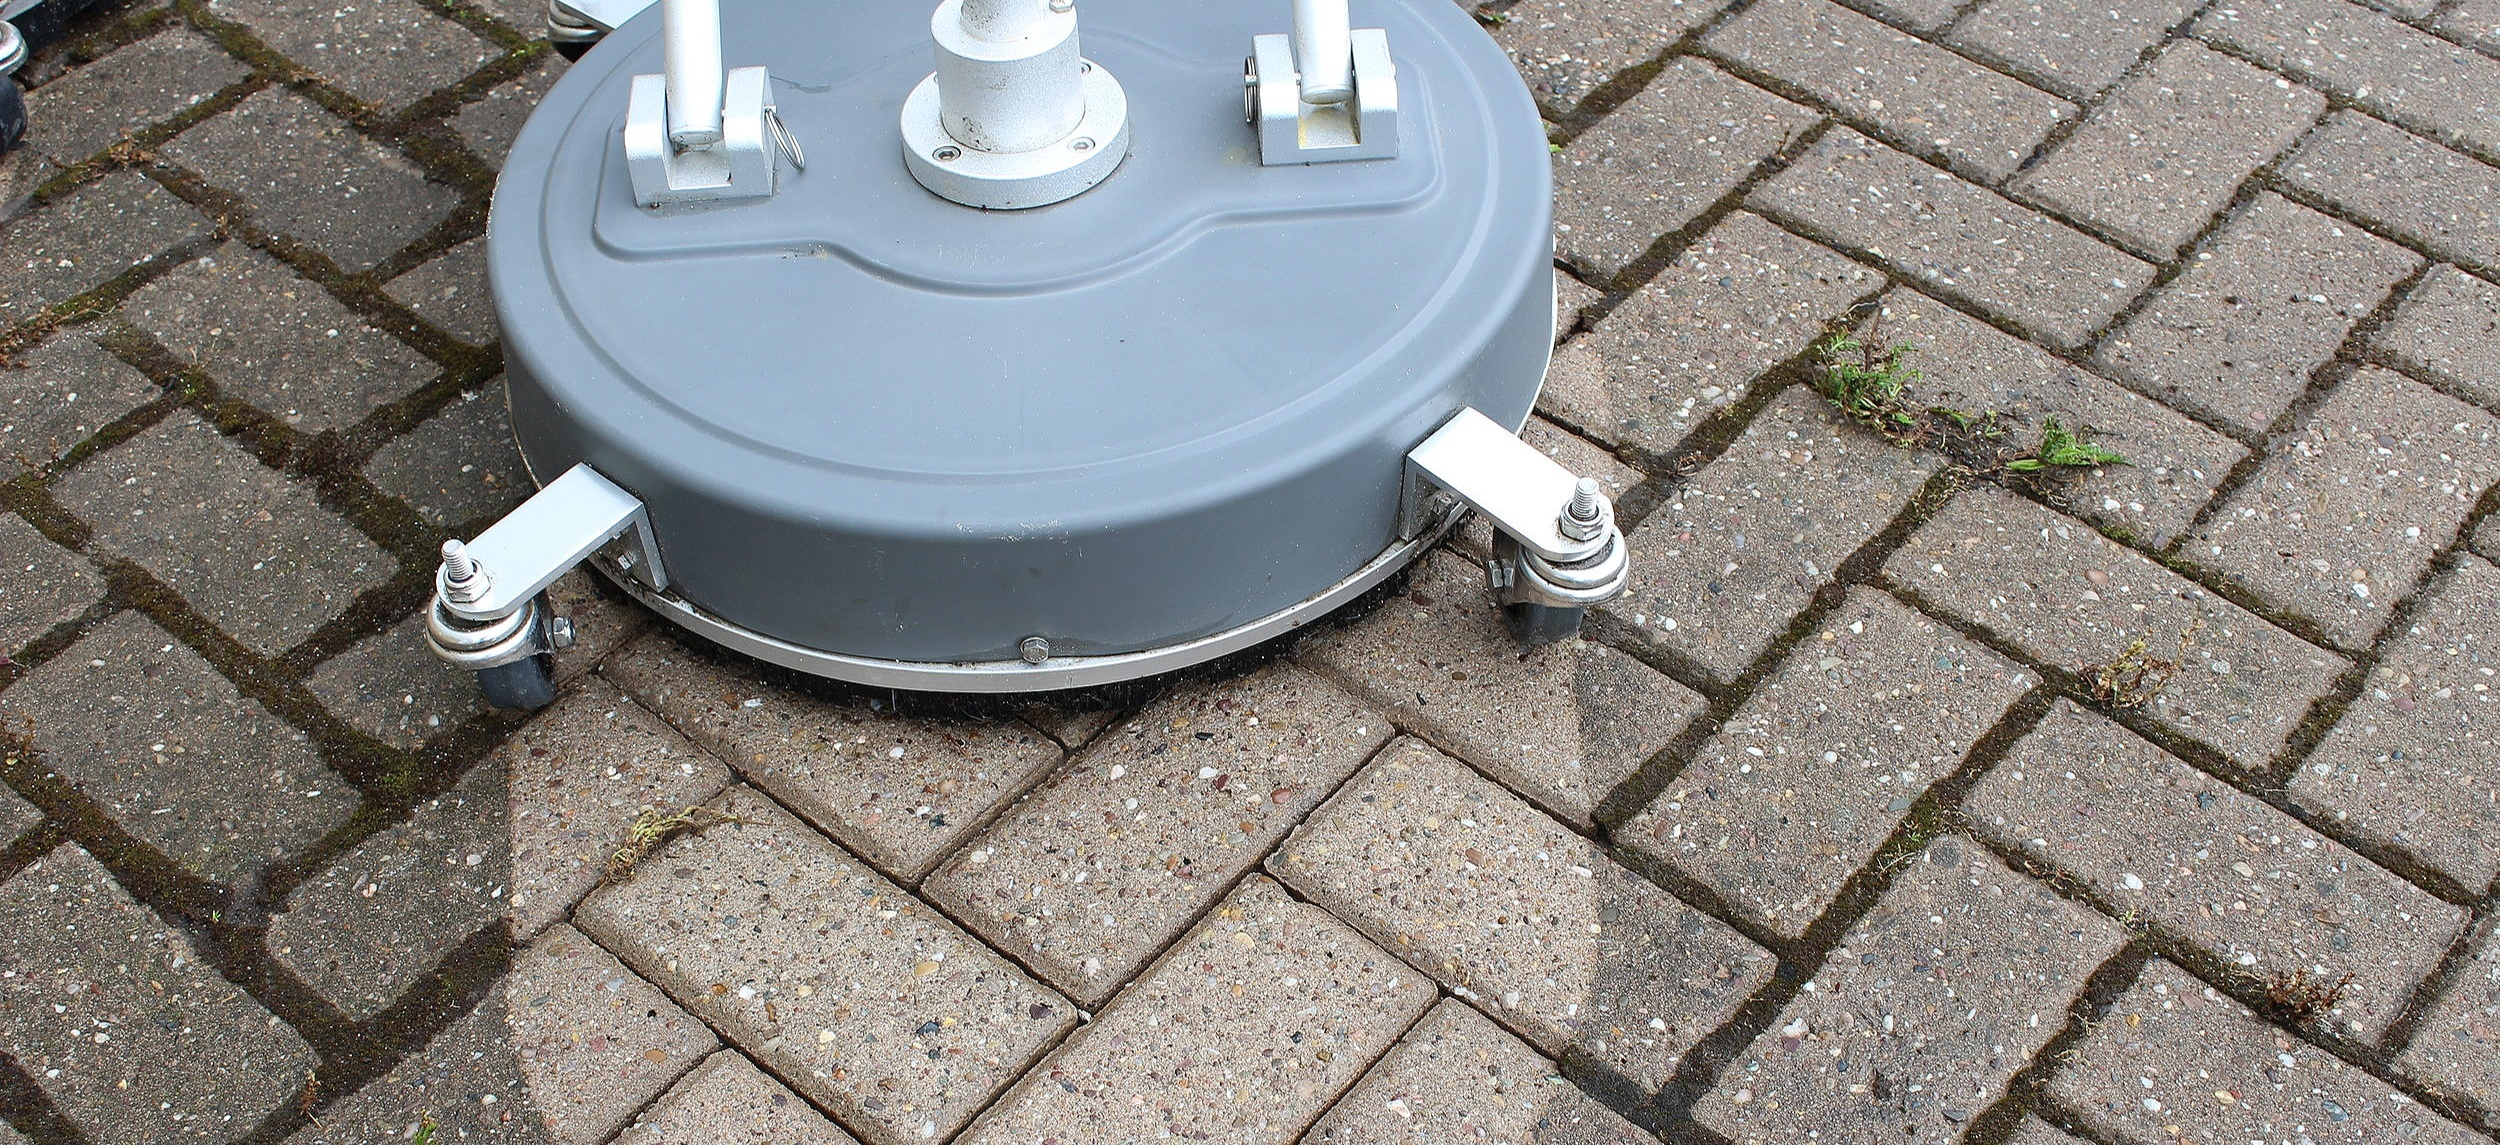 SPECIALIST CLEANING - At Paul Smith Drive & Patio cleaning we offer the best bespoke cleaning service for your driveway &  patio.